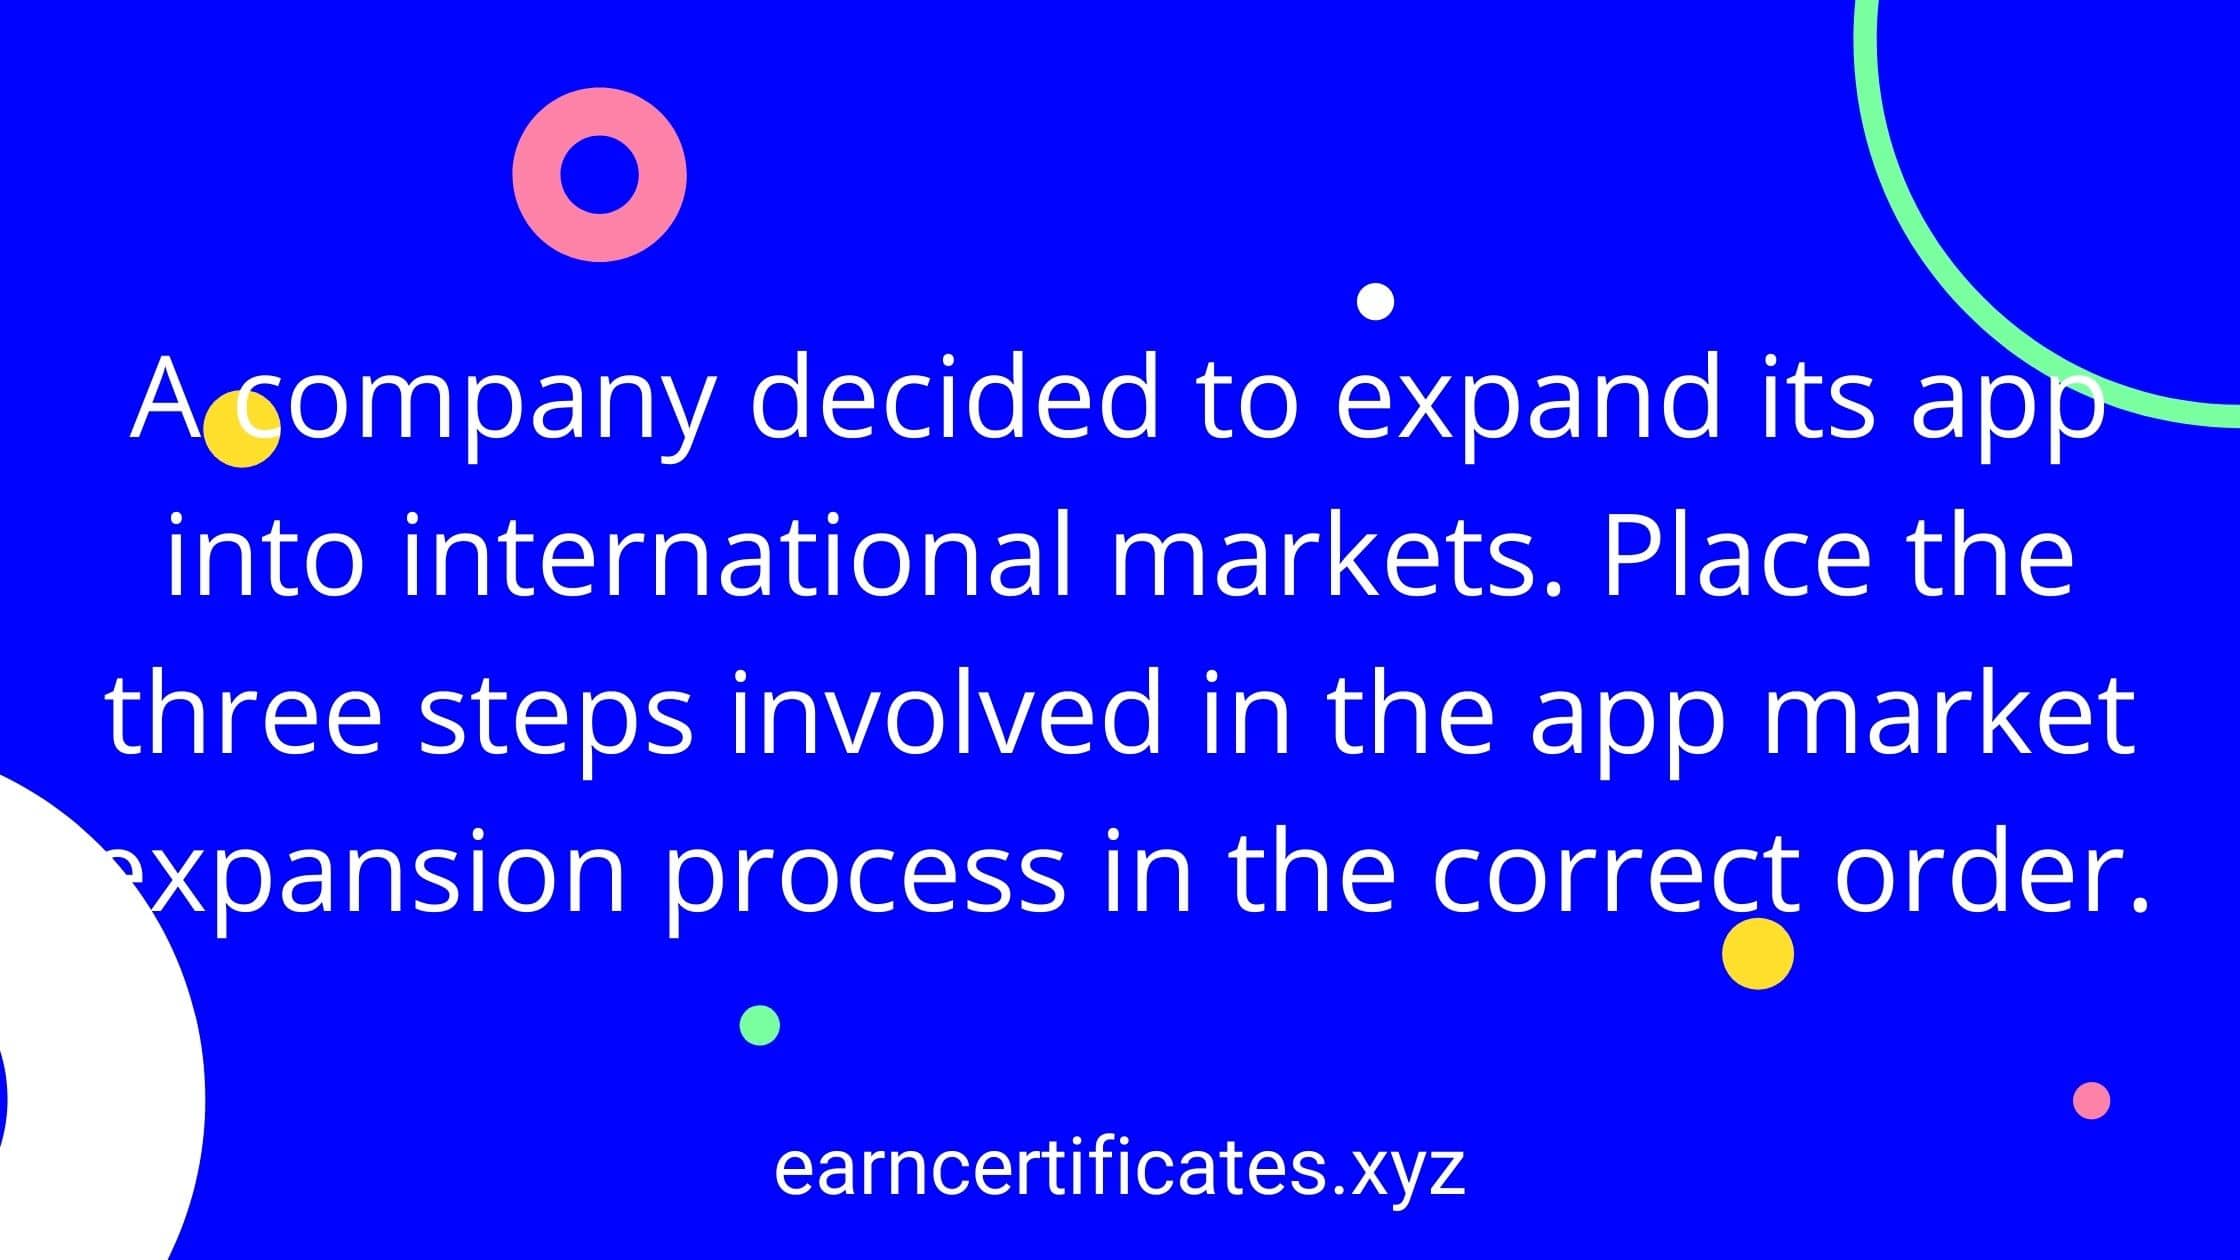 A company decided to expand its app into international markets. Place the three steps involved in the app market expansion process in the correct order.